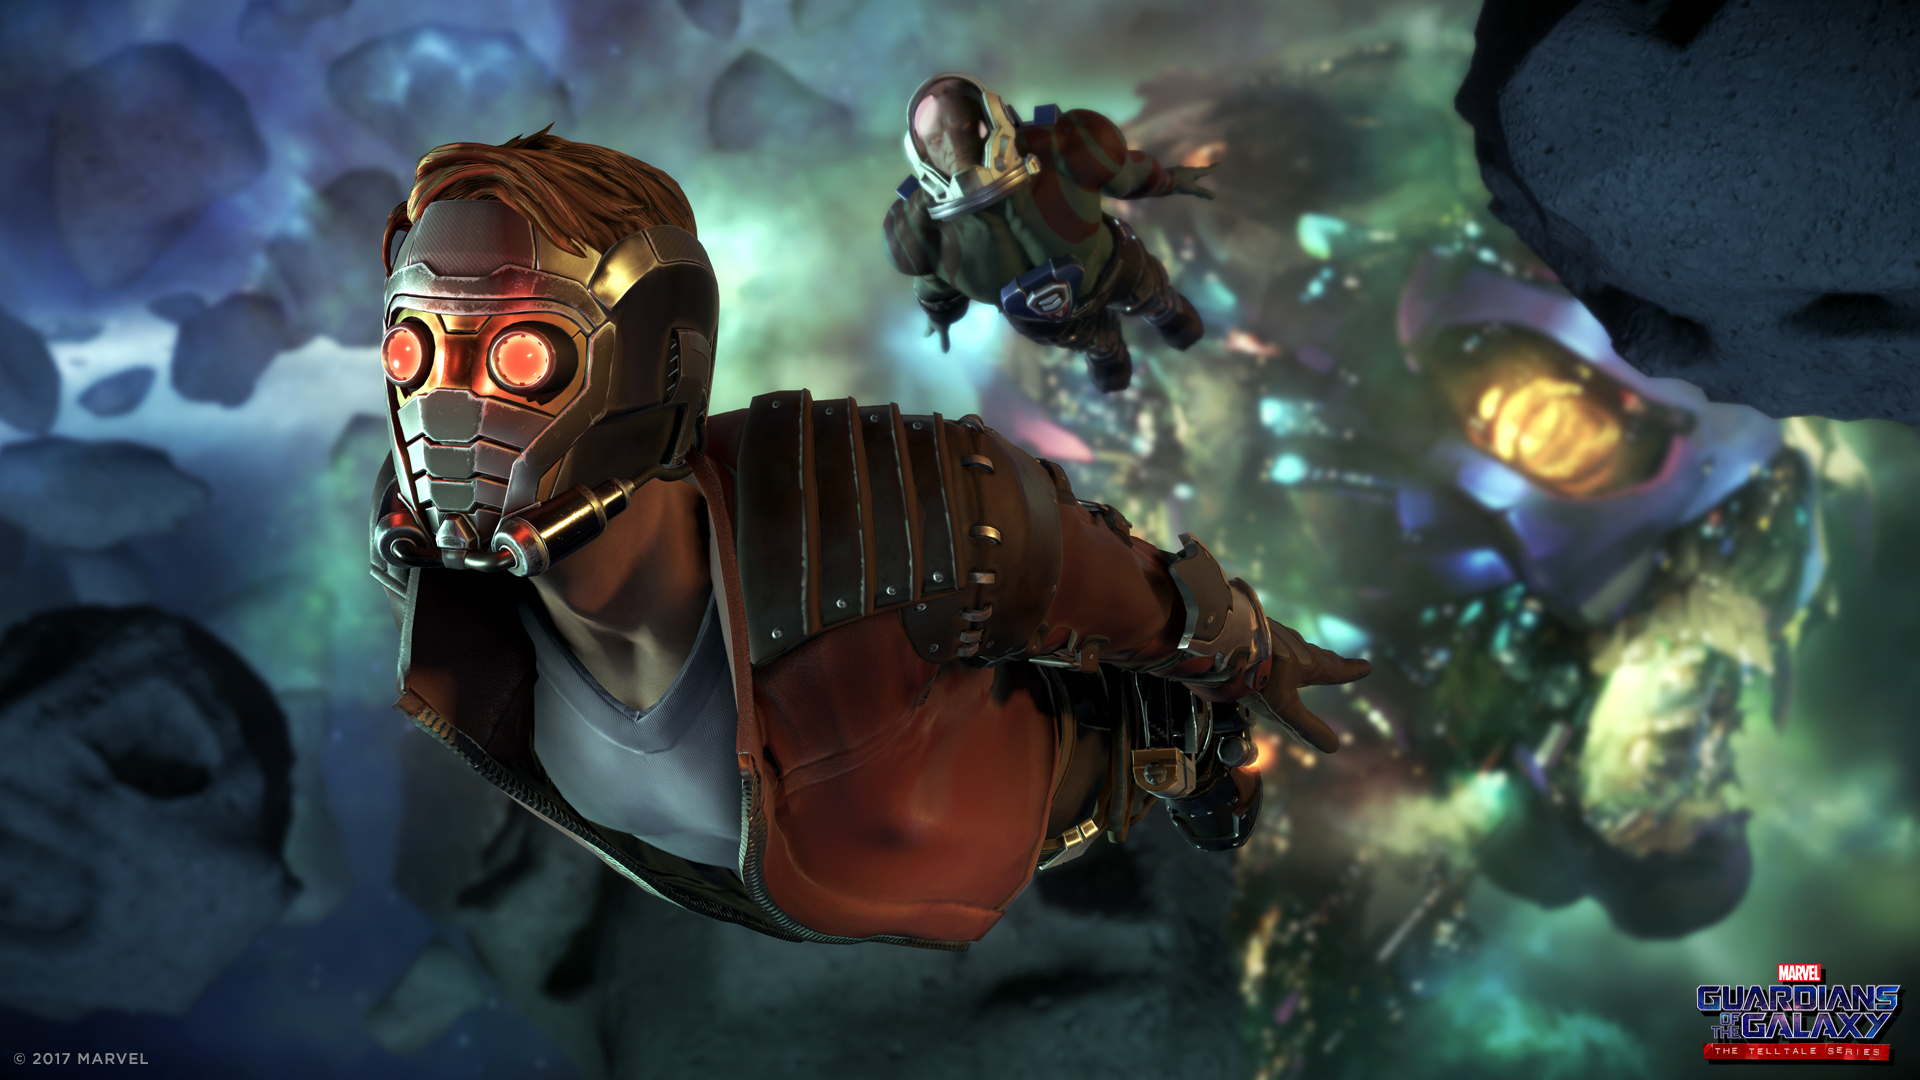 Marvels Guardians Of The Galaxy: The Telltale Series Review GotG Asteroid Belt 1920x1080